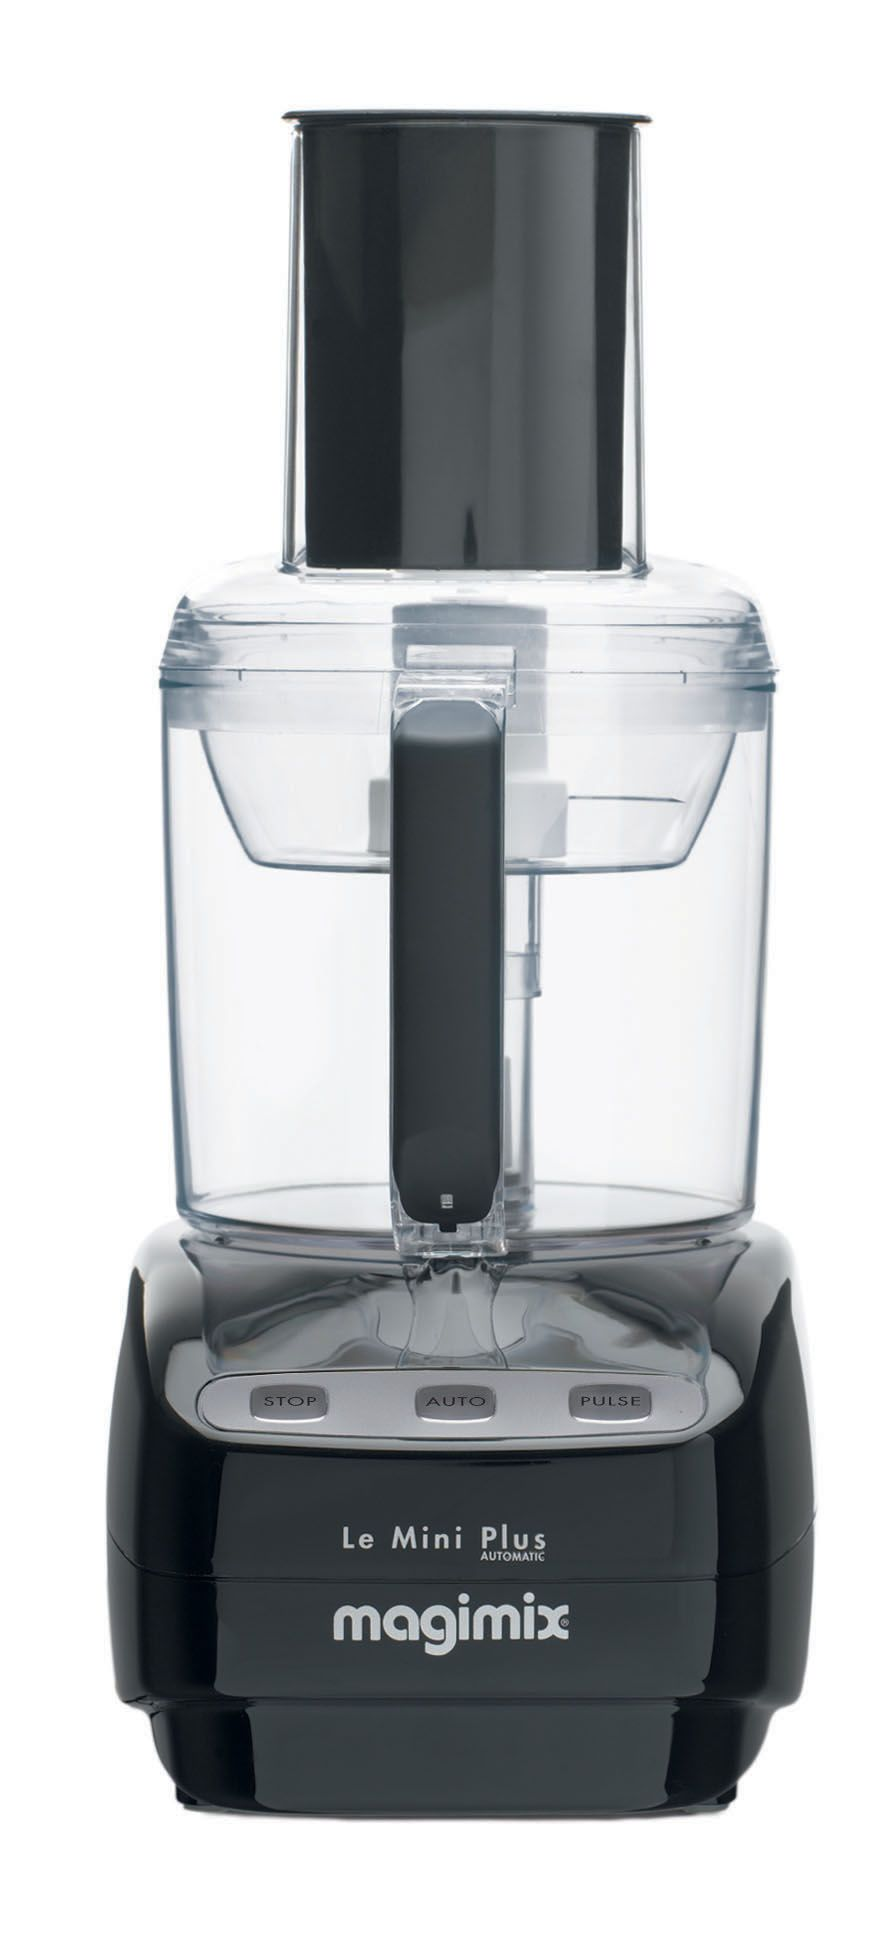 Le Mini Plus Food Processor Black